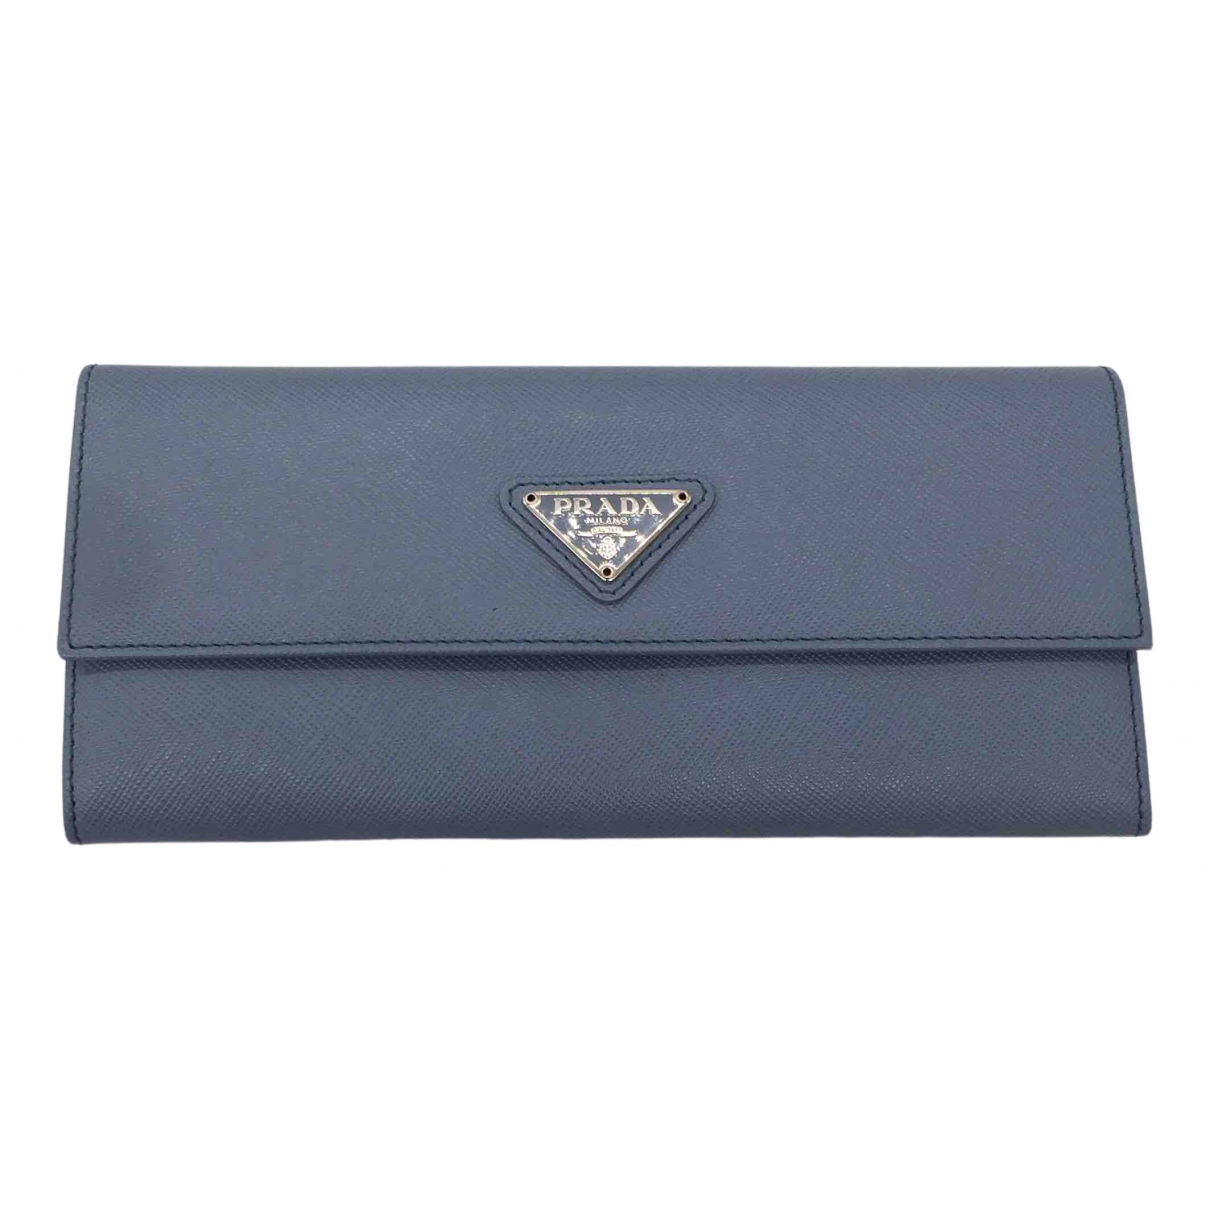 Prada \N Blue Leather wallet for Women \N